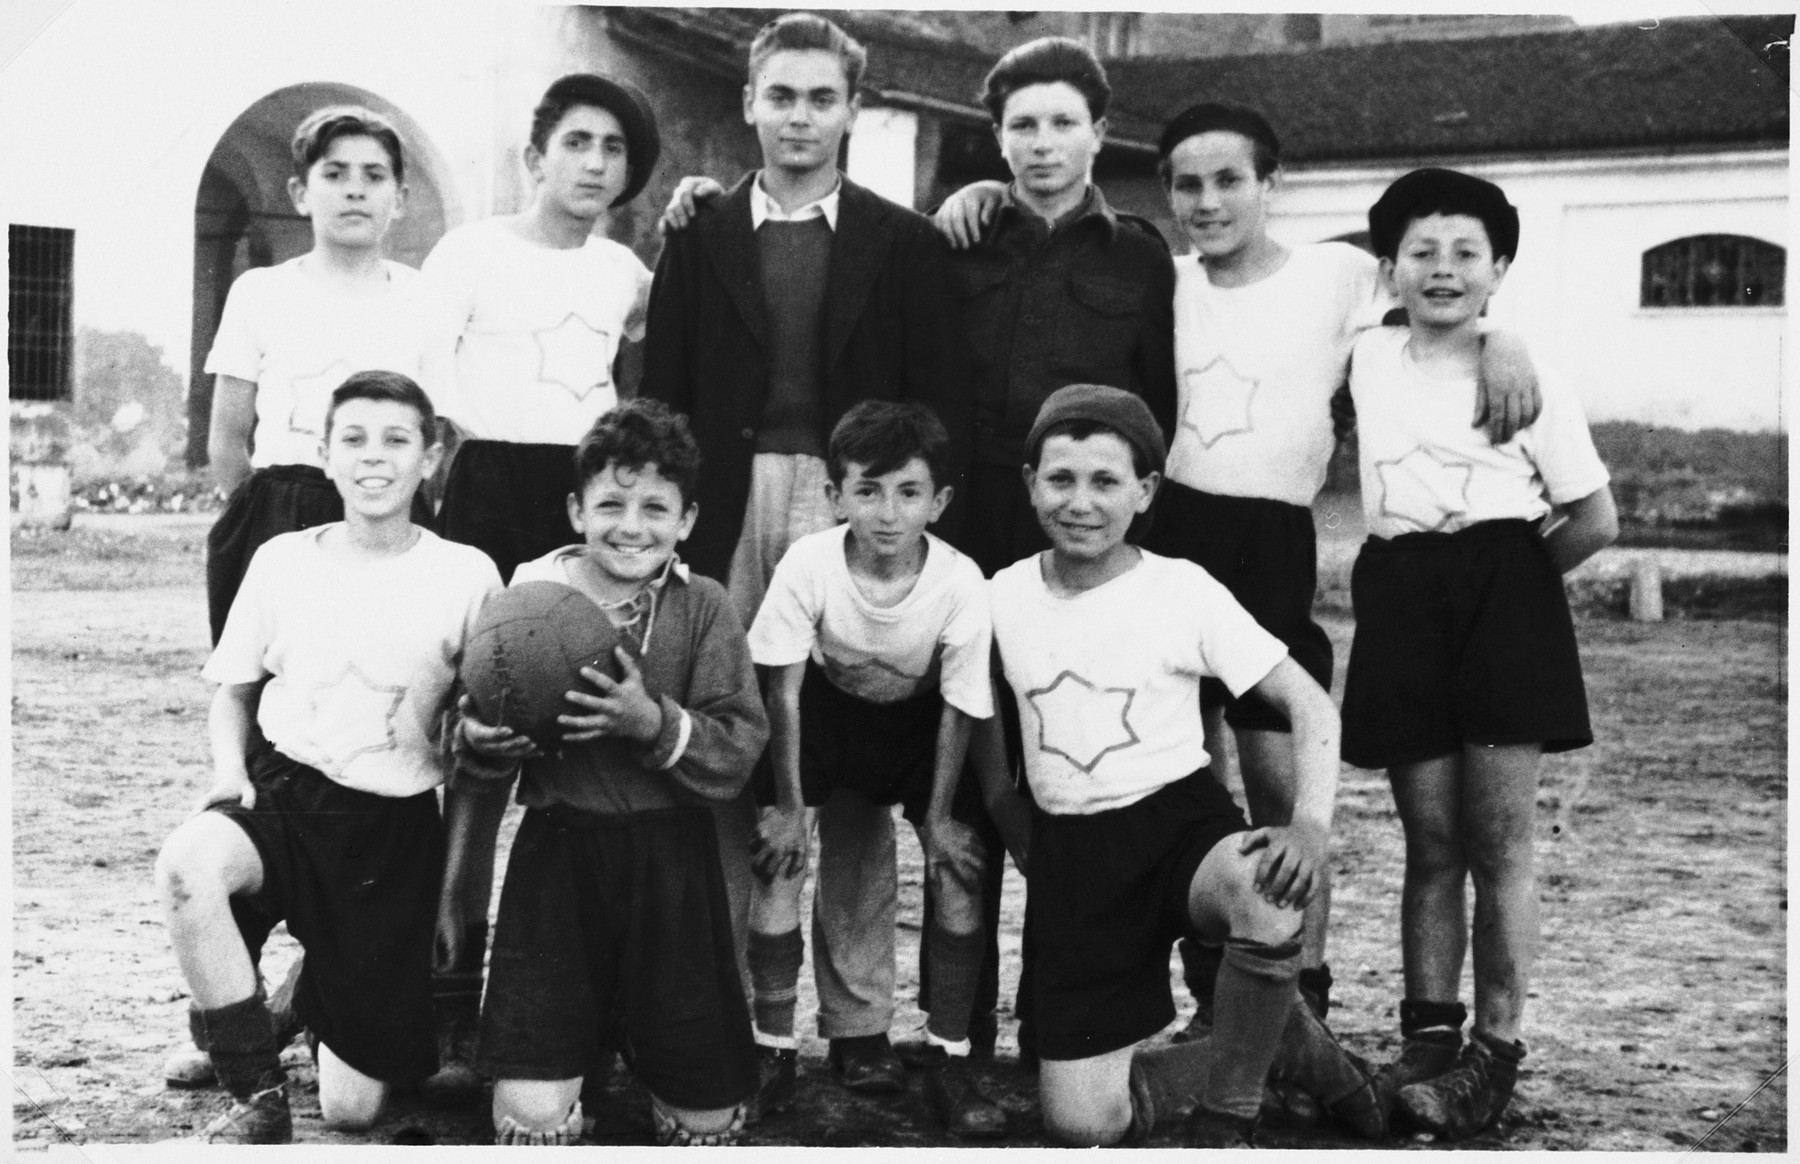 Group portrait of the members of a boy's soccer team wearing shirts with a Star of David.  Those pictured include Sam Freger (first row, second from the left), Ernst Sznitlinger (back row, center) and Shie Zoltak (back row, third from the right).